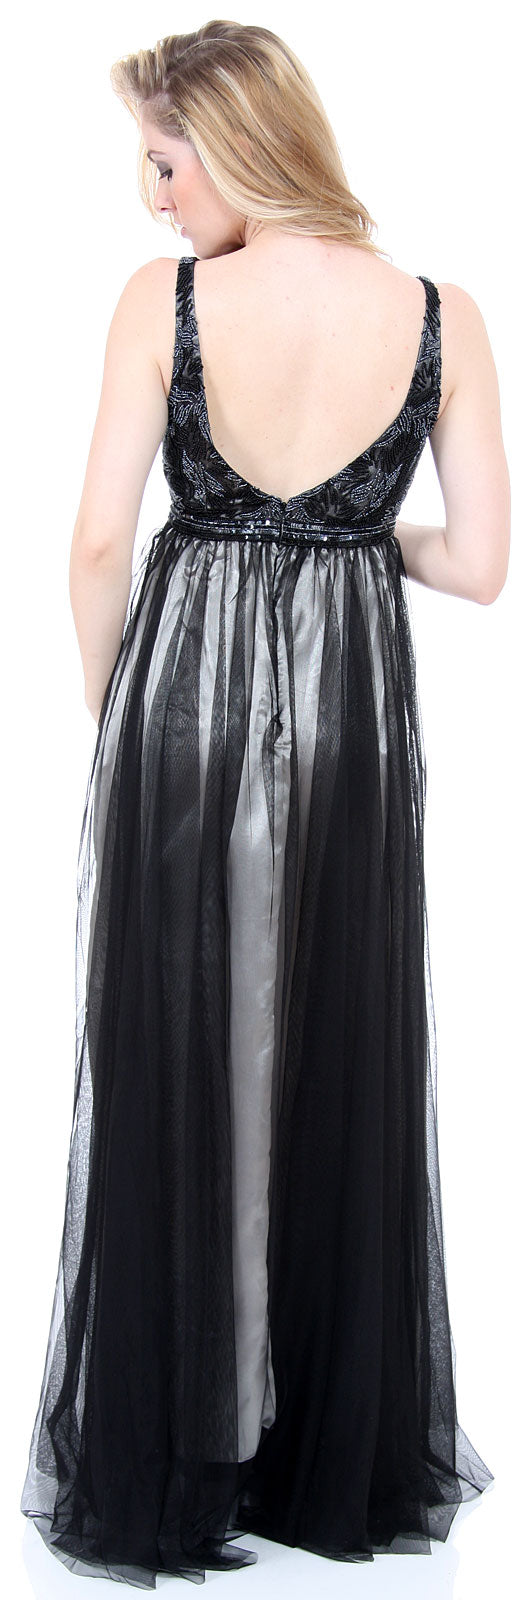 Image of Plus Size Full Length Formal Mob Evening Gown With Jacket back in Black/Silver